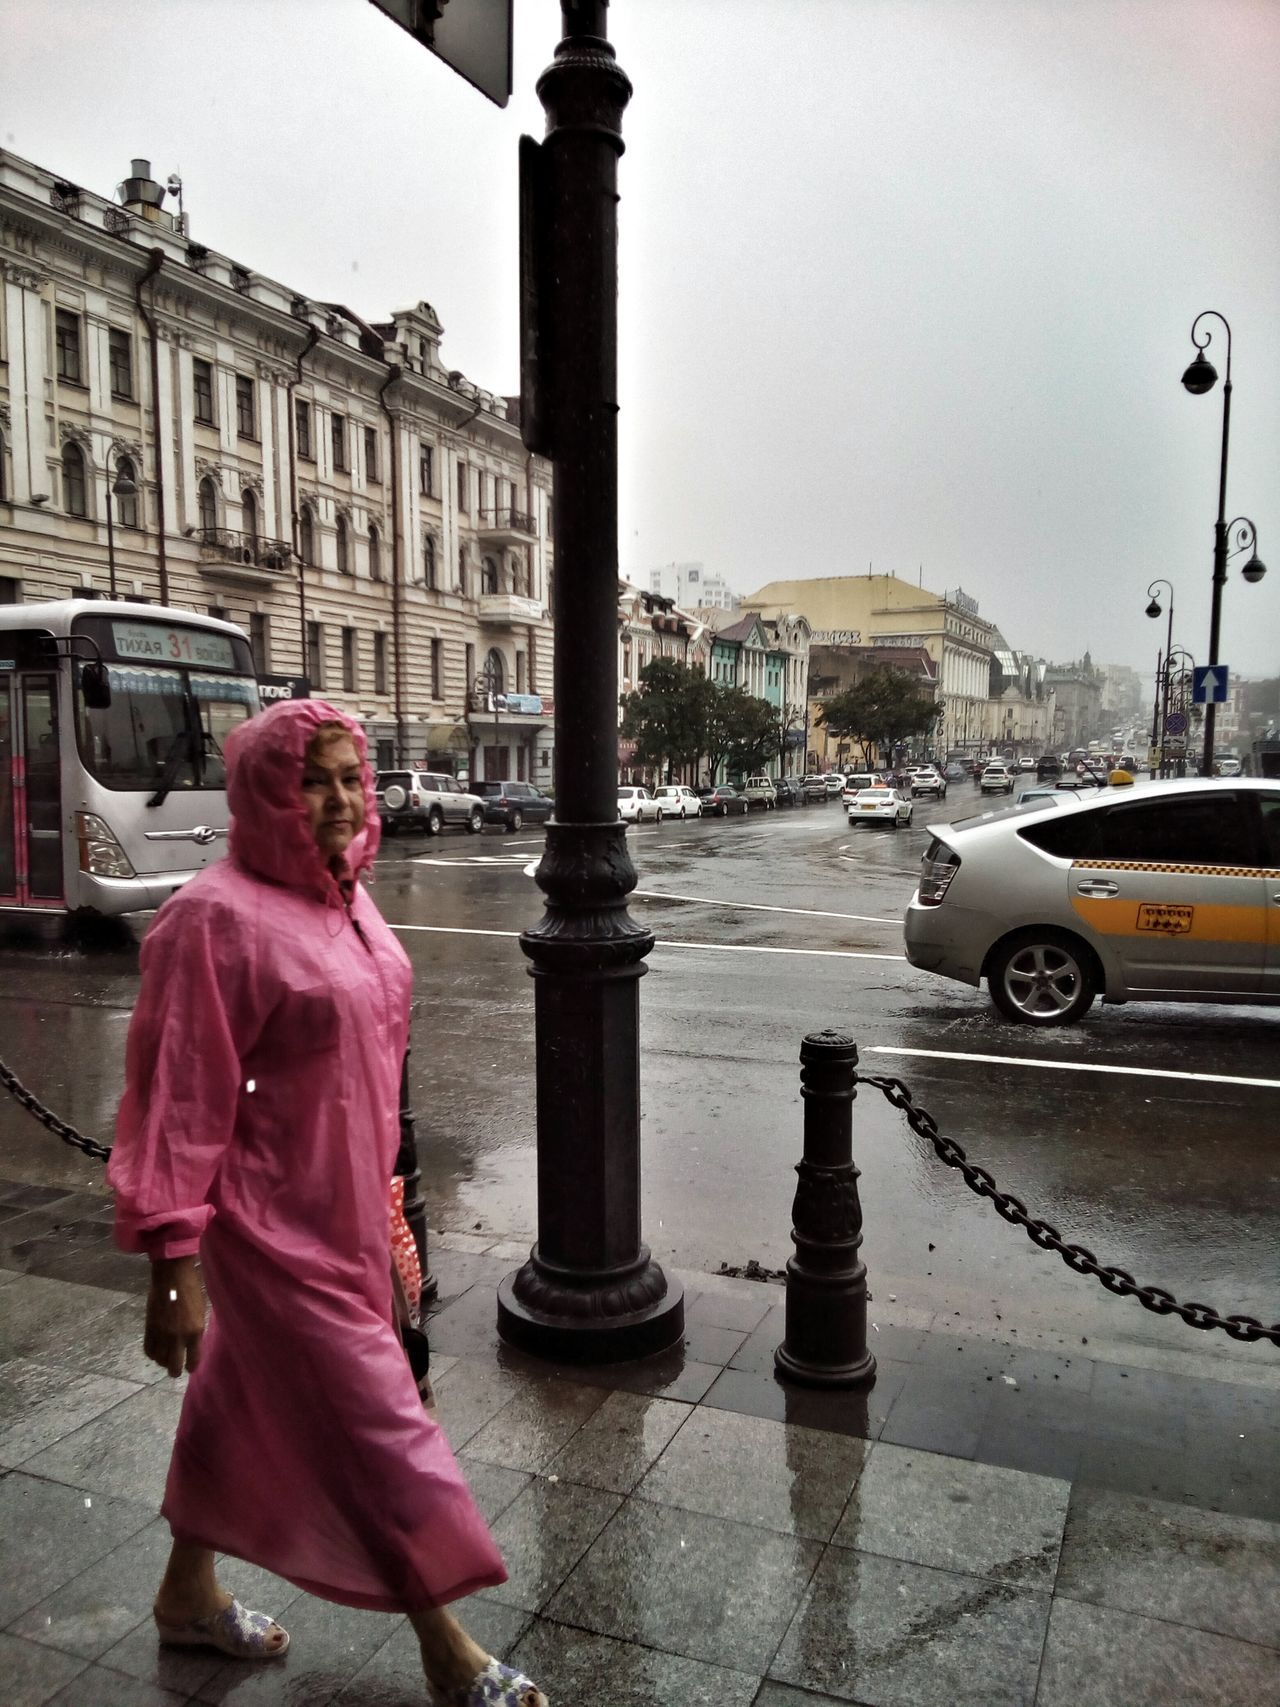 Millennial Pink City Street One Person Travel Destinations Adult Rainy Day Outdoors People Day City Crossroads Street Car Taxi Bus Woman